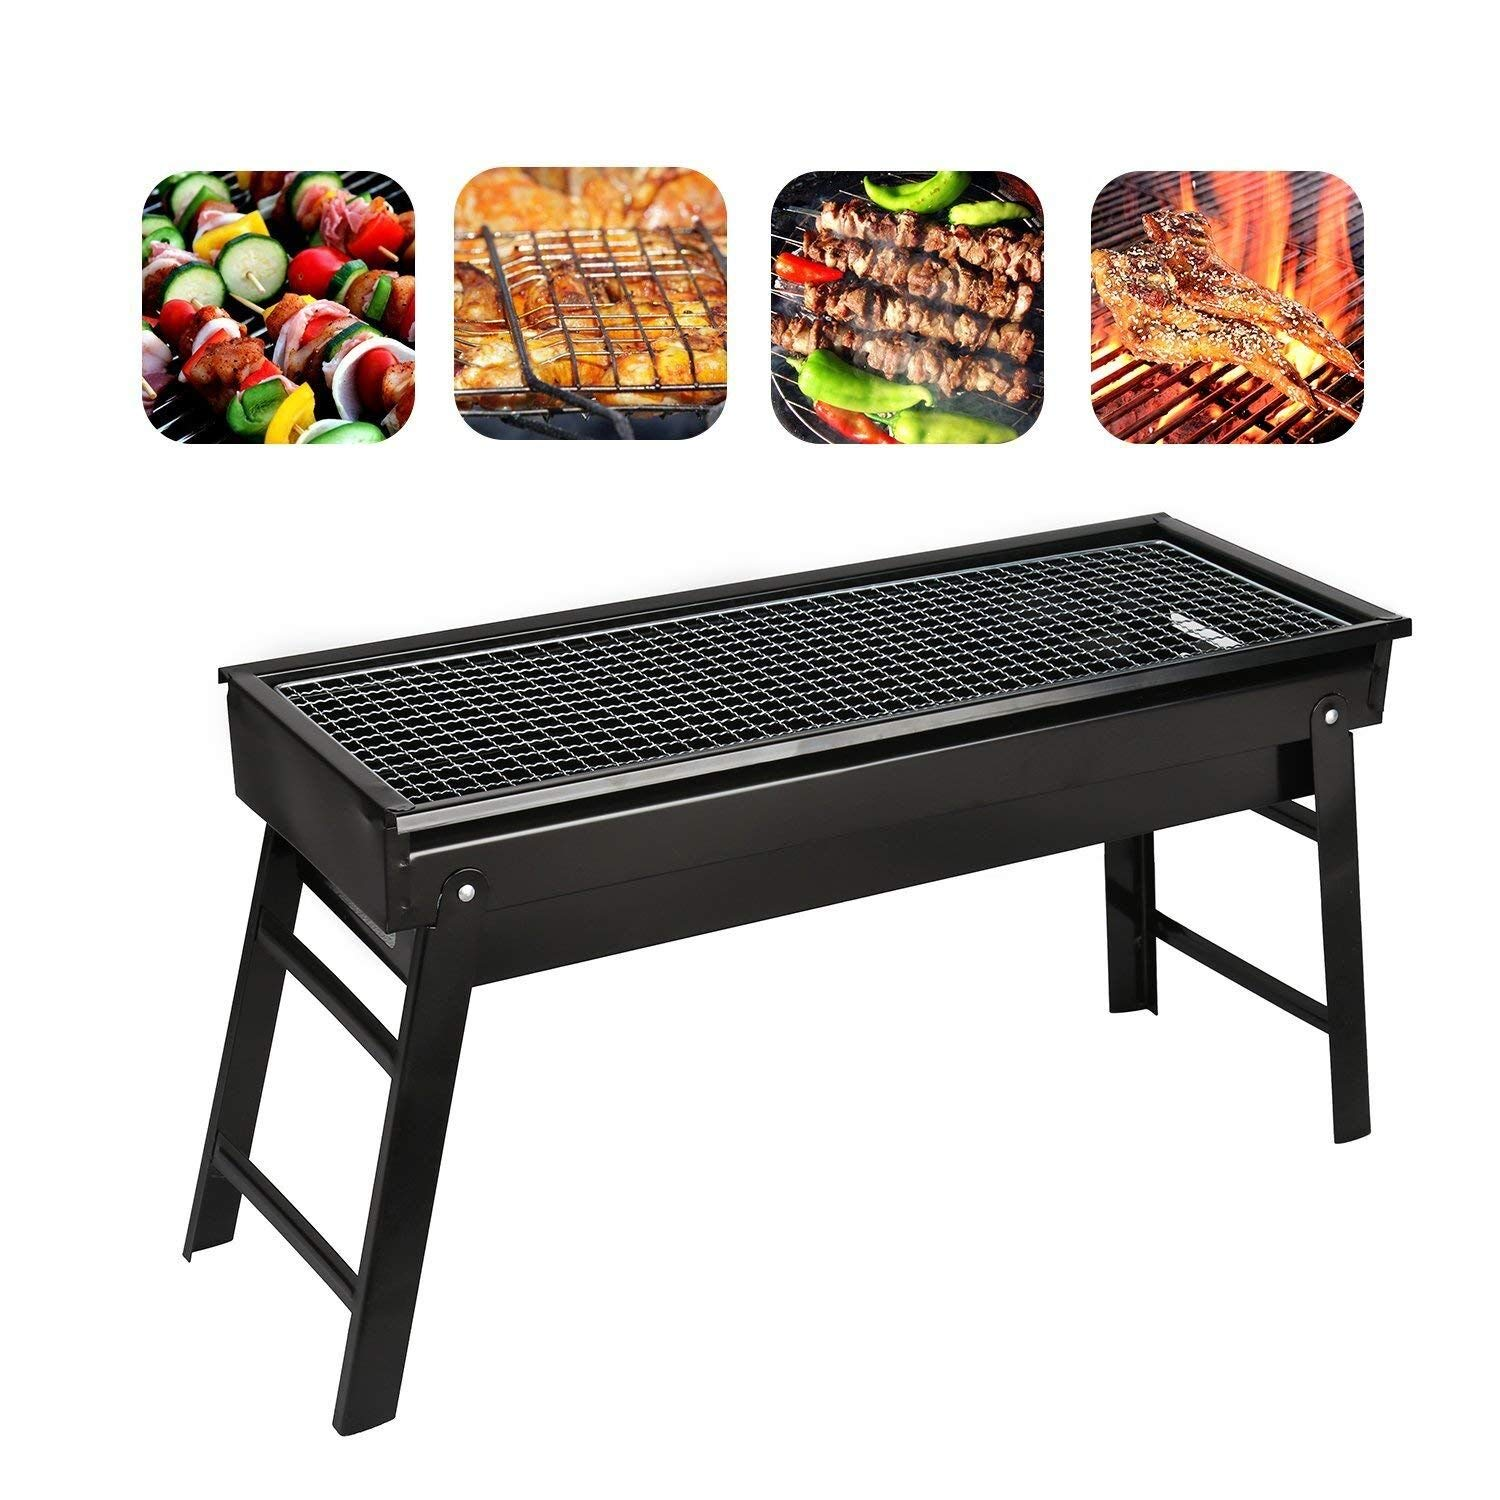 1d8be65d30990d Get Quotations · Portable BBQ Barbecue Foldable Camping Picnic Outdoor  Garden Charcoal BBQ Grill Party